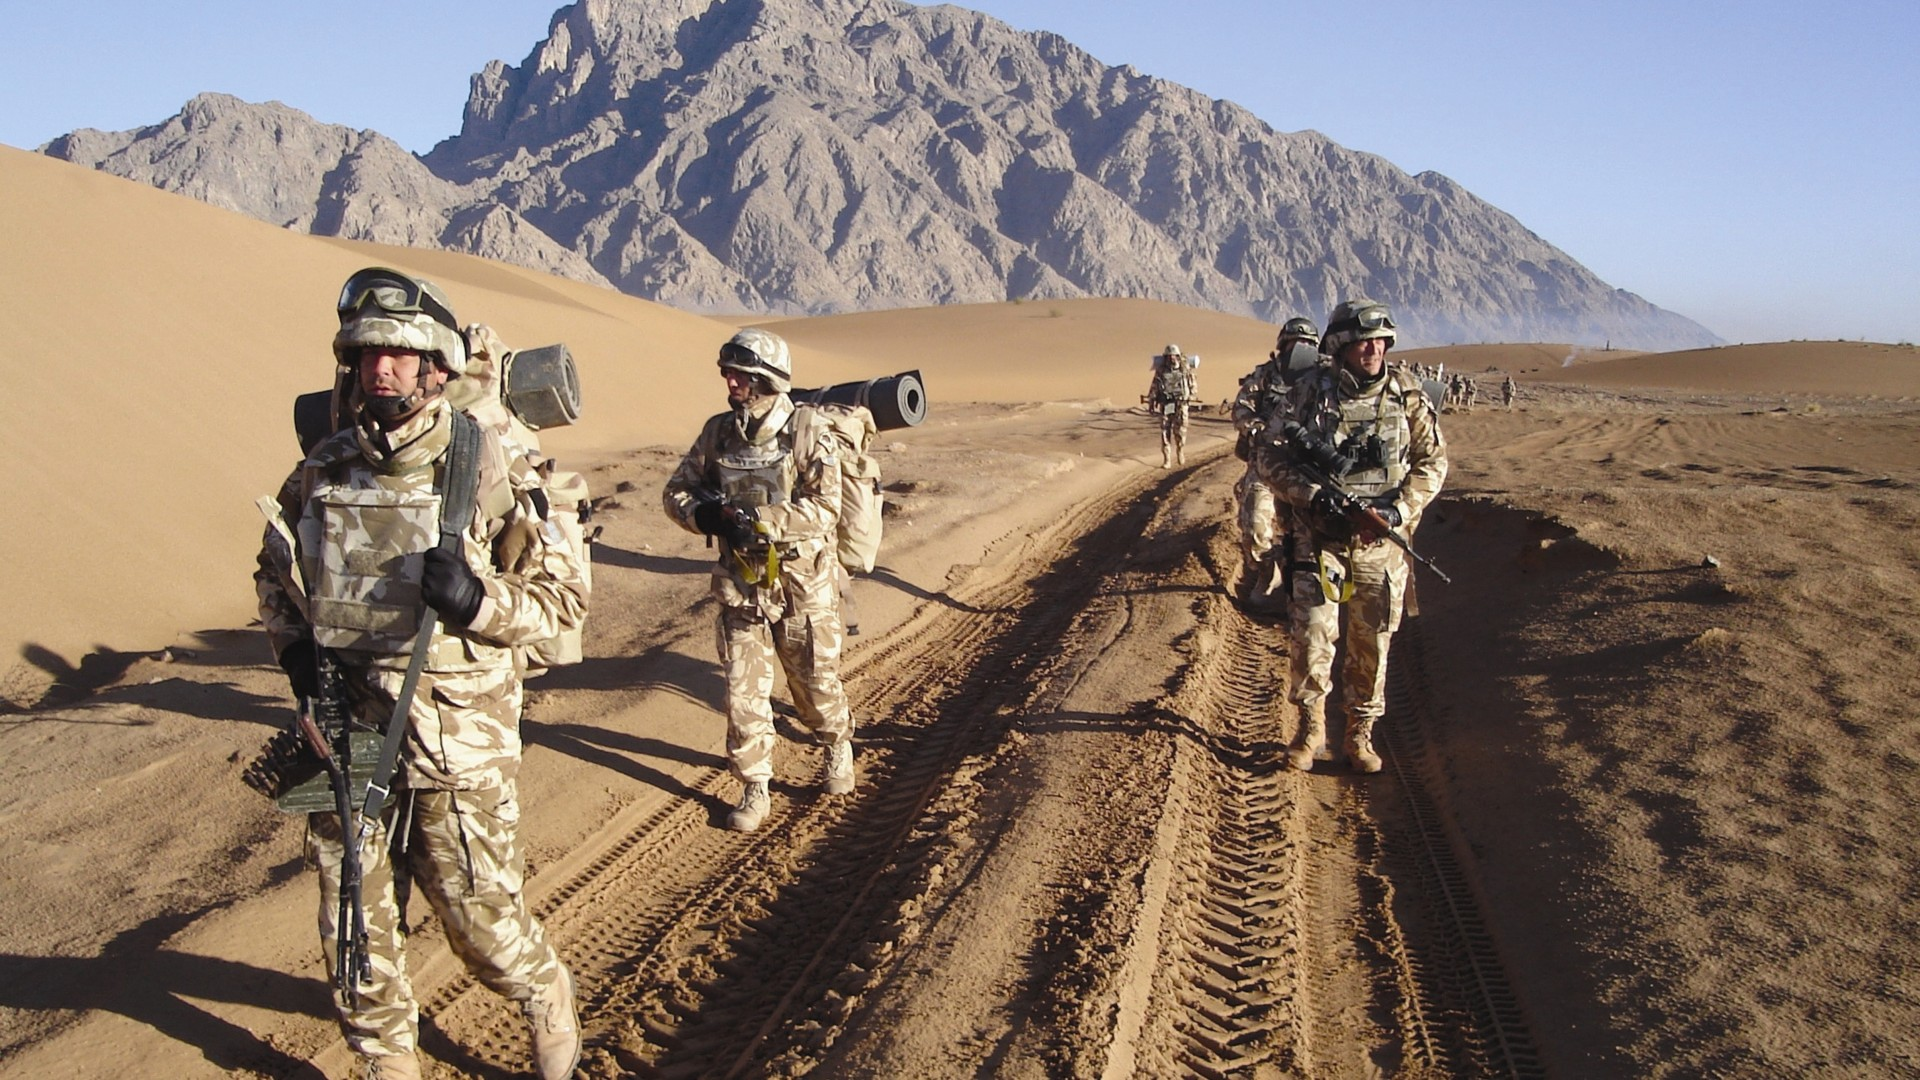 Romanian Armed Forces, soldier, Romania, mountain, Afghanistan, patrol (horizontal)